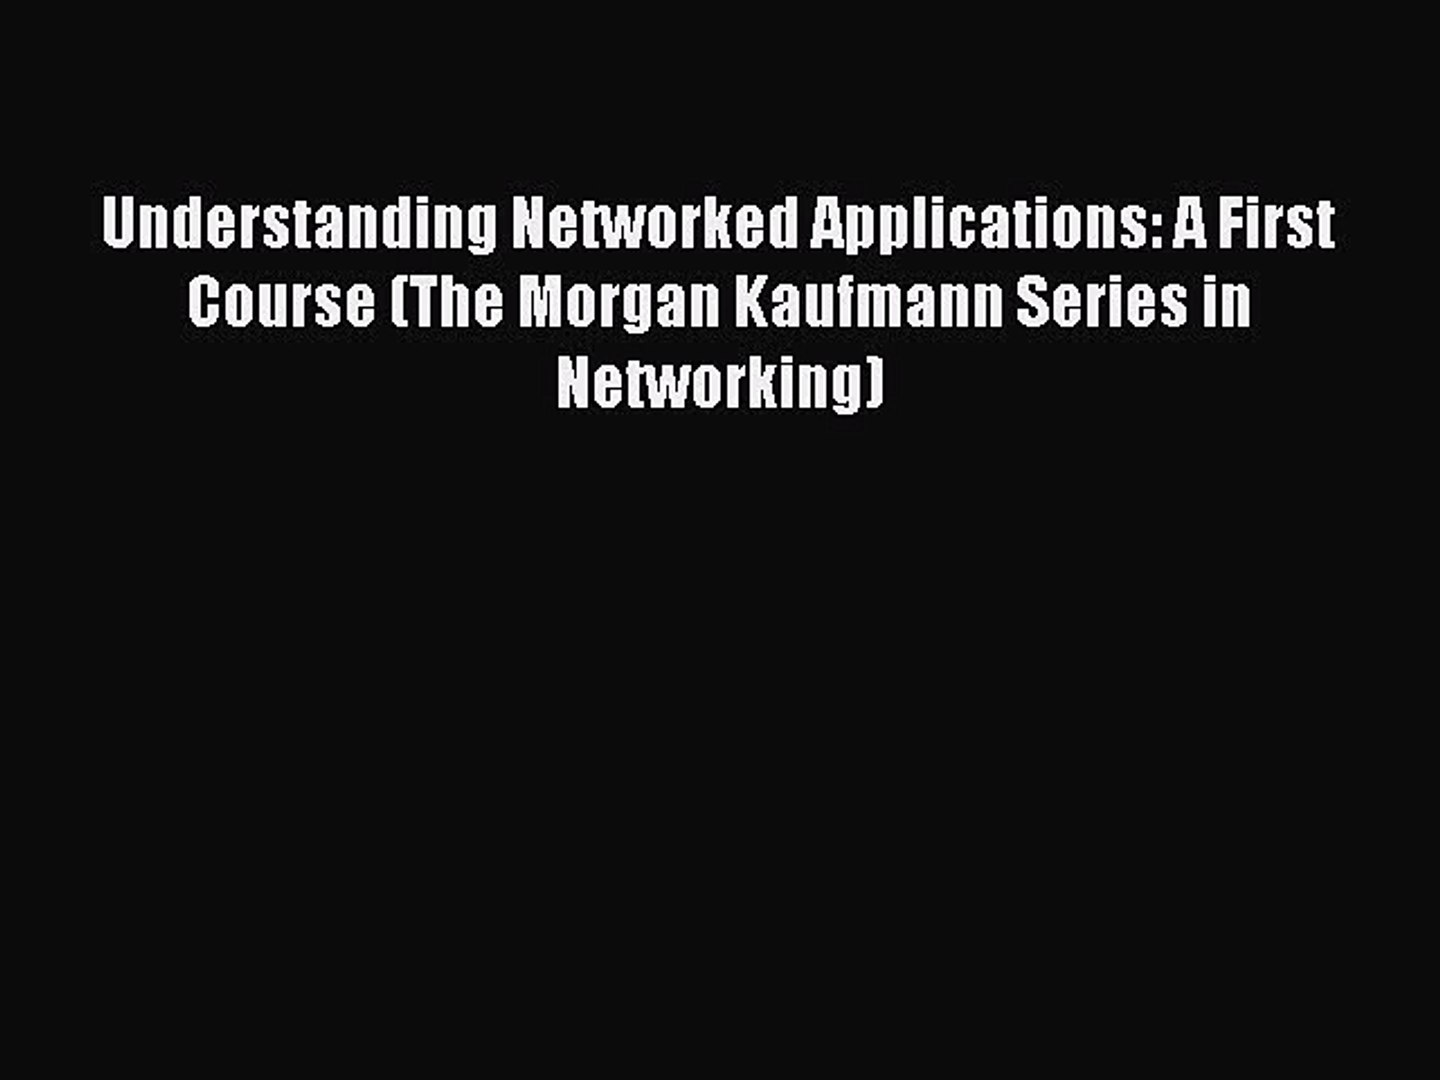 Understanding Networked Applications: A First Course (The Morgan Kaufmann Series in Networking)